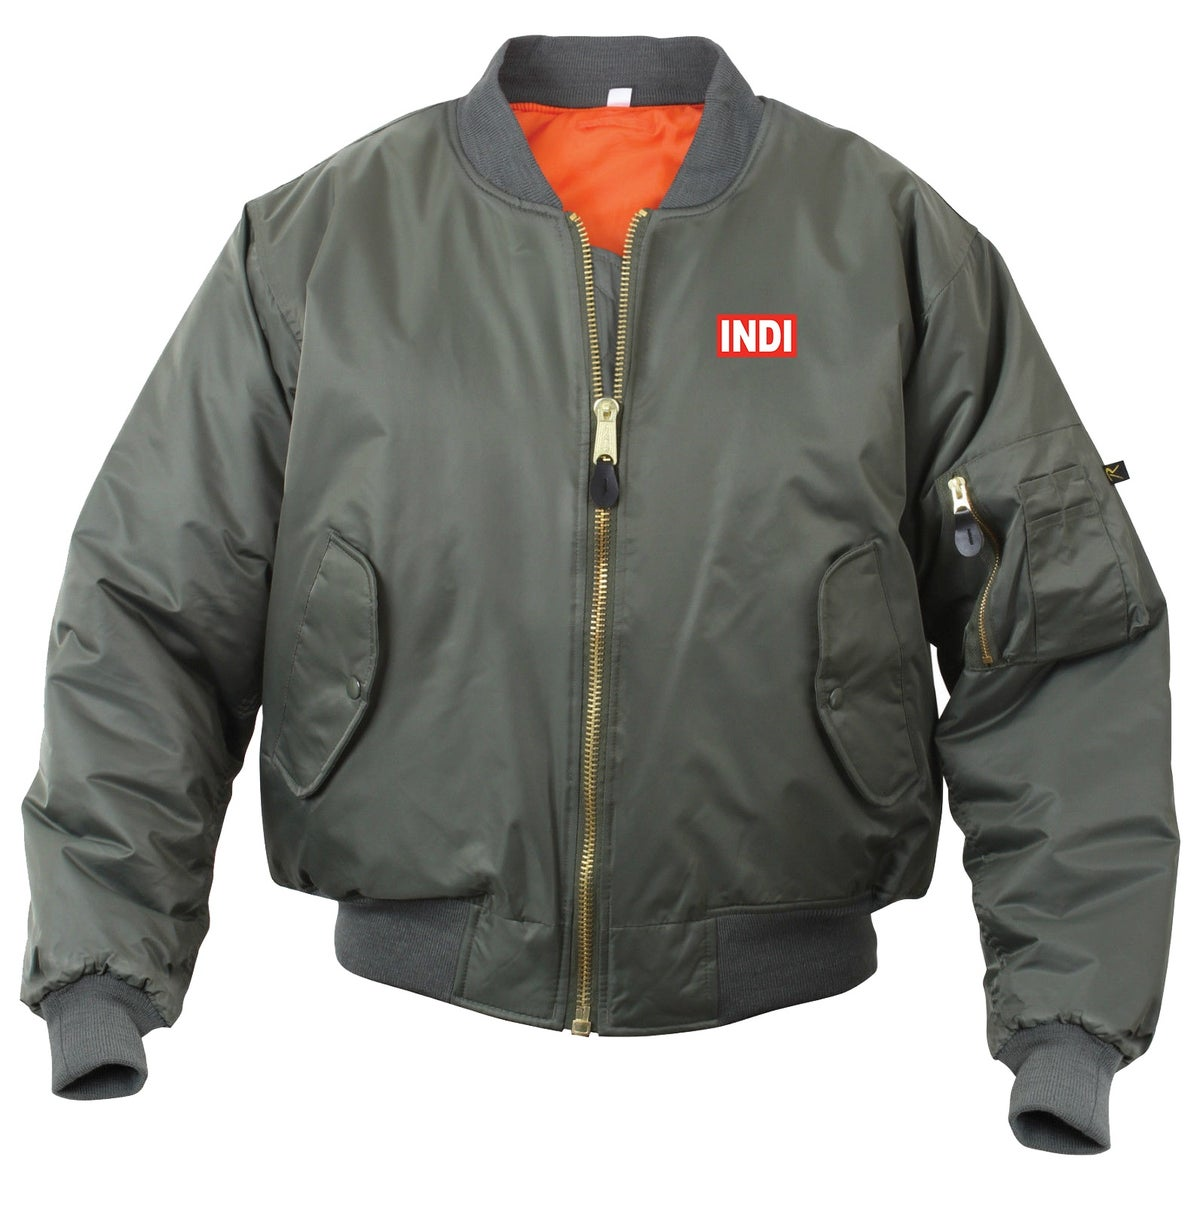 Image of INDI Bomber: Green